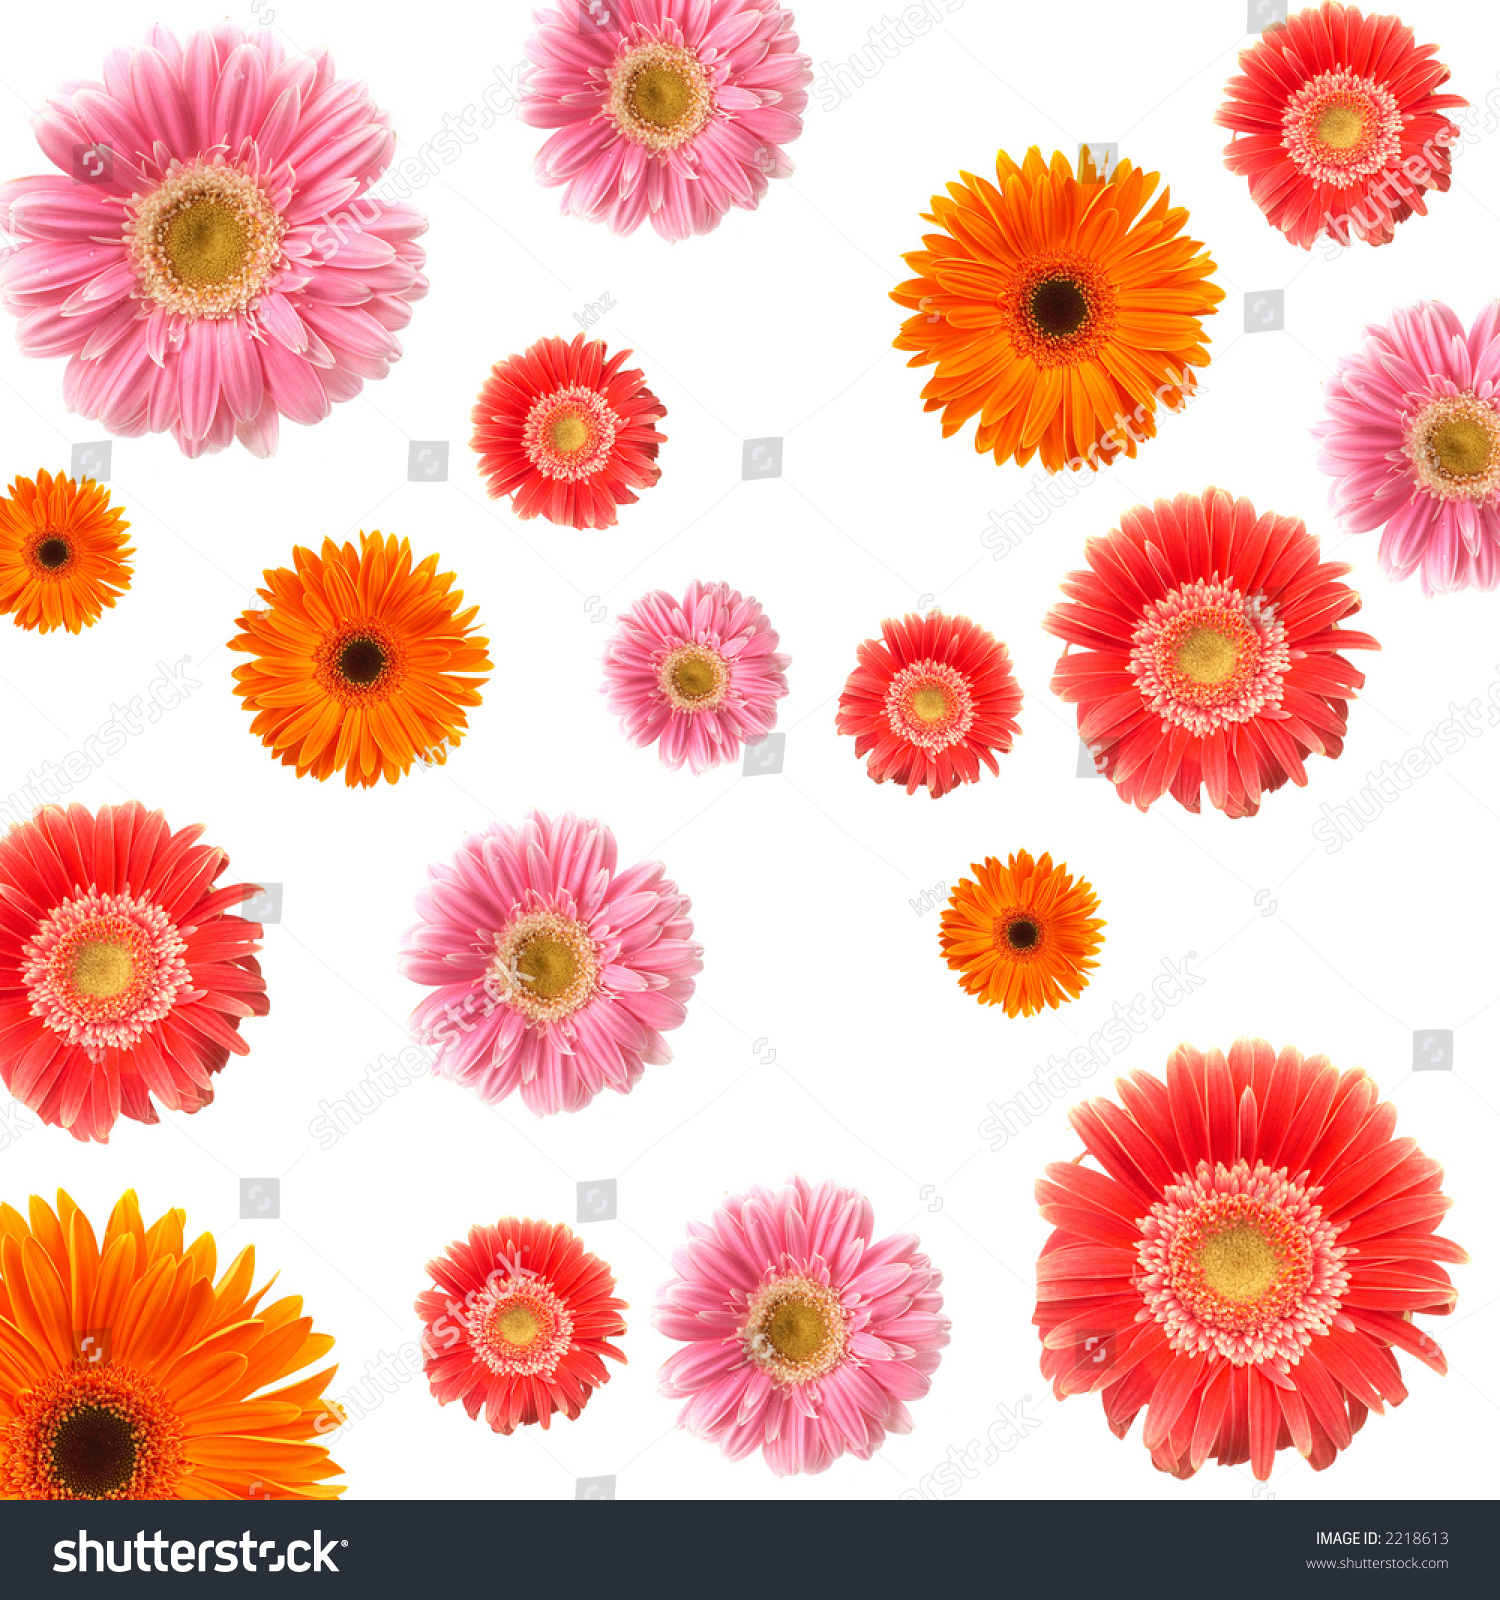 Lots Colorful Daisy Flowers On White Stock Photo 2218613 Shutterstock